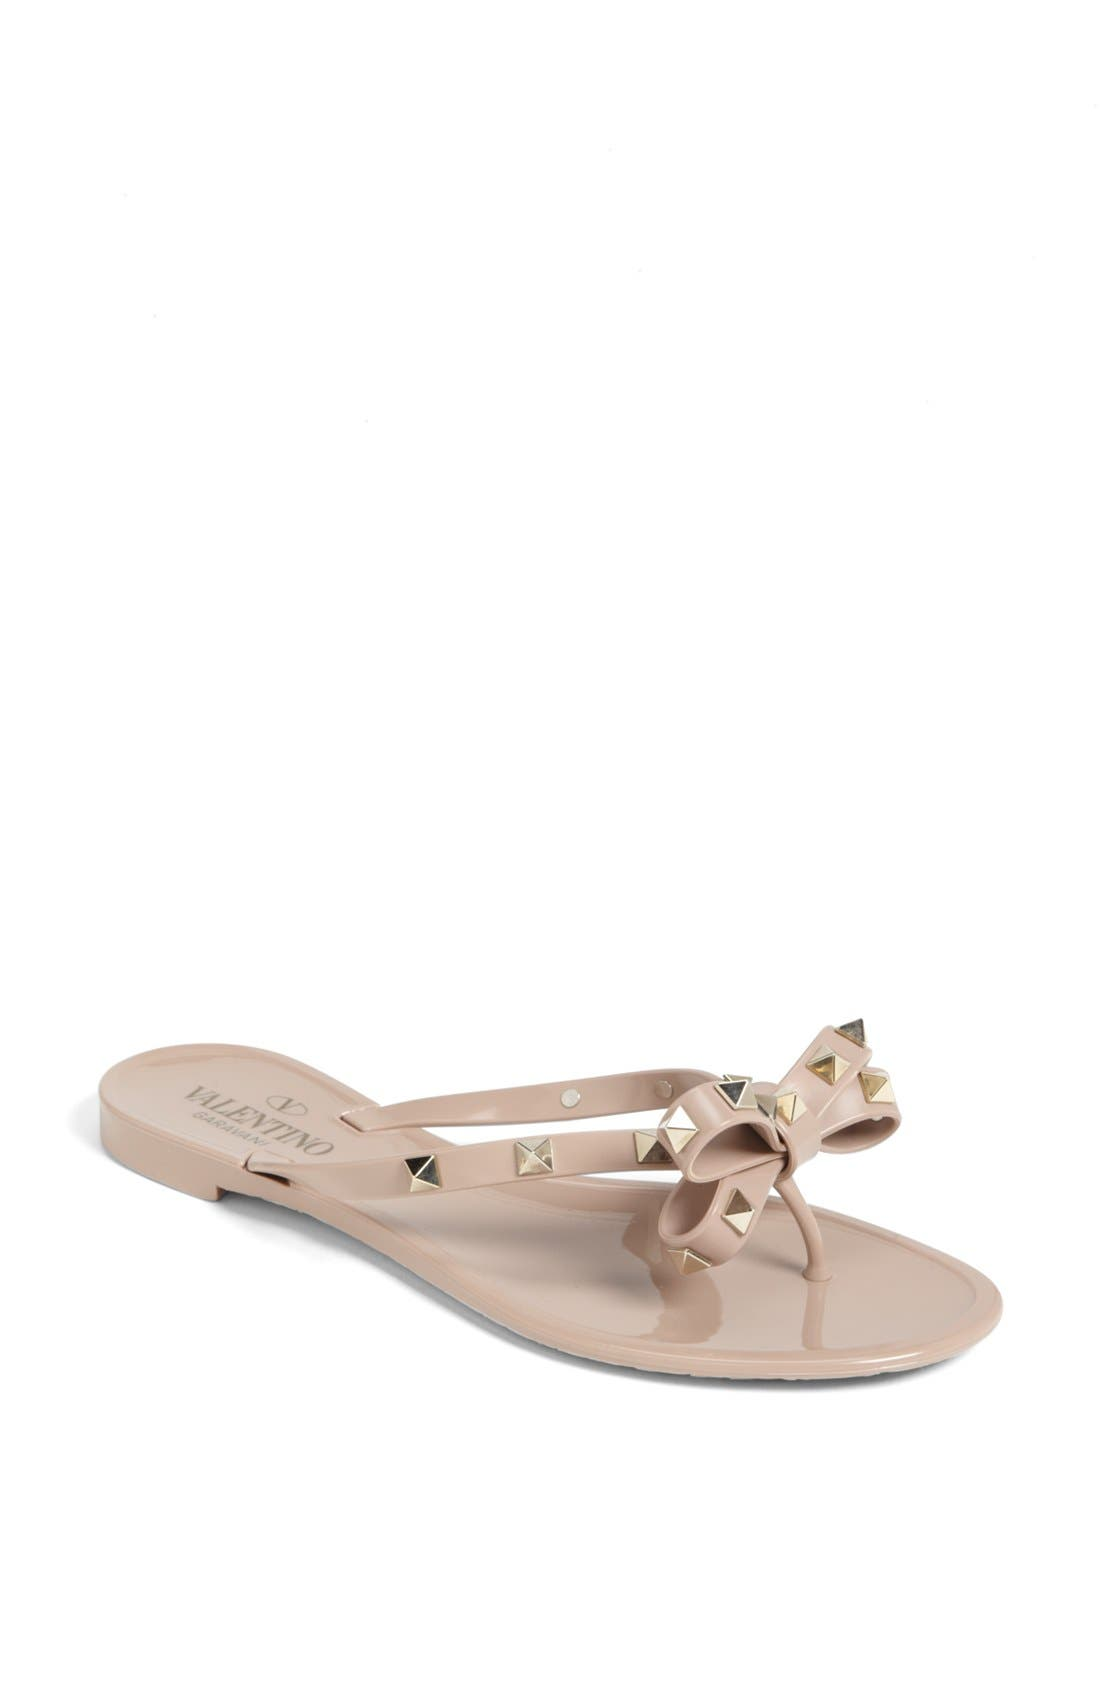 Alternate Image 1 Selected - VALENTINO GARAVANI 'Rockstud' Flip Flop (Women)